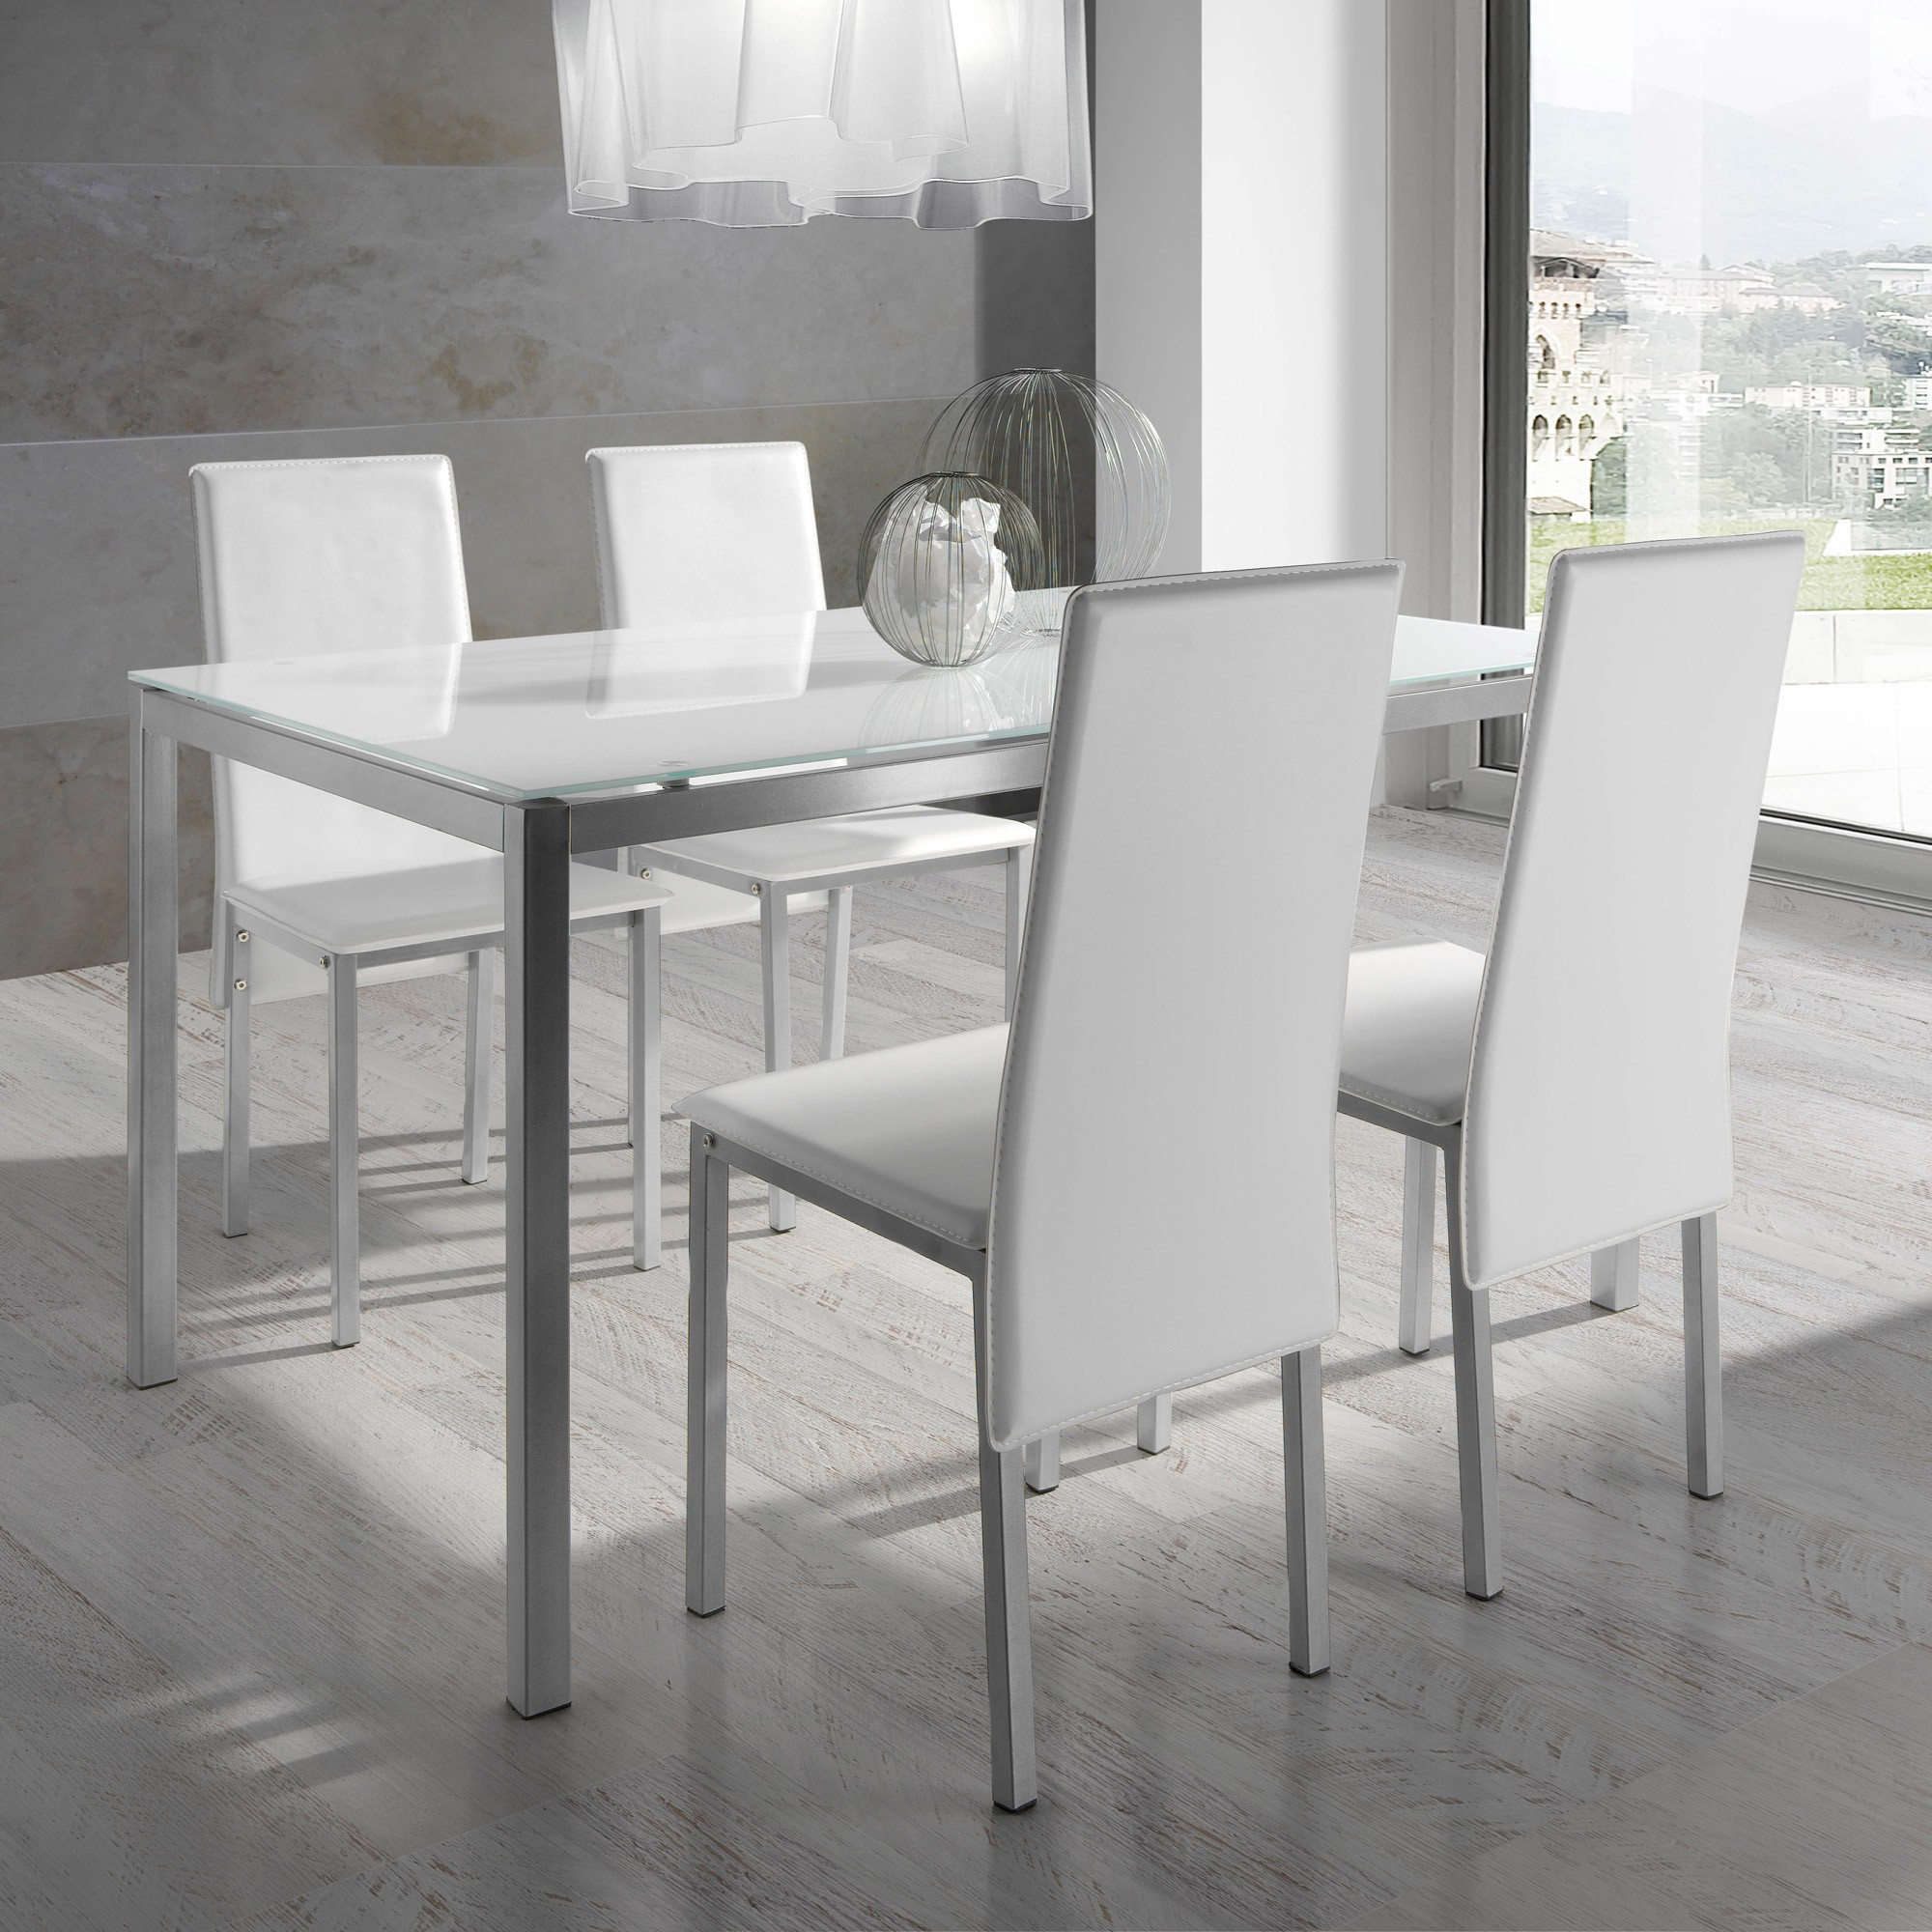 Ensemble table et chaise salle a manger but chaise for Table et chaises de salle a manger design